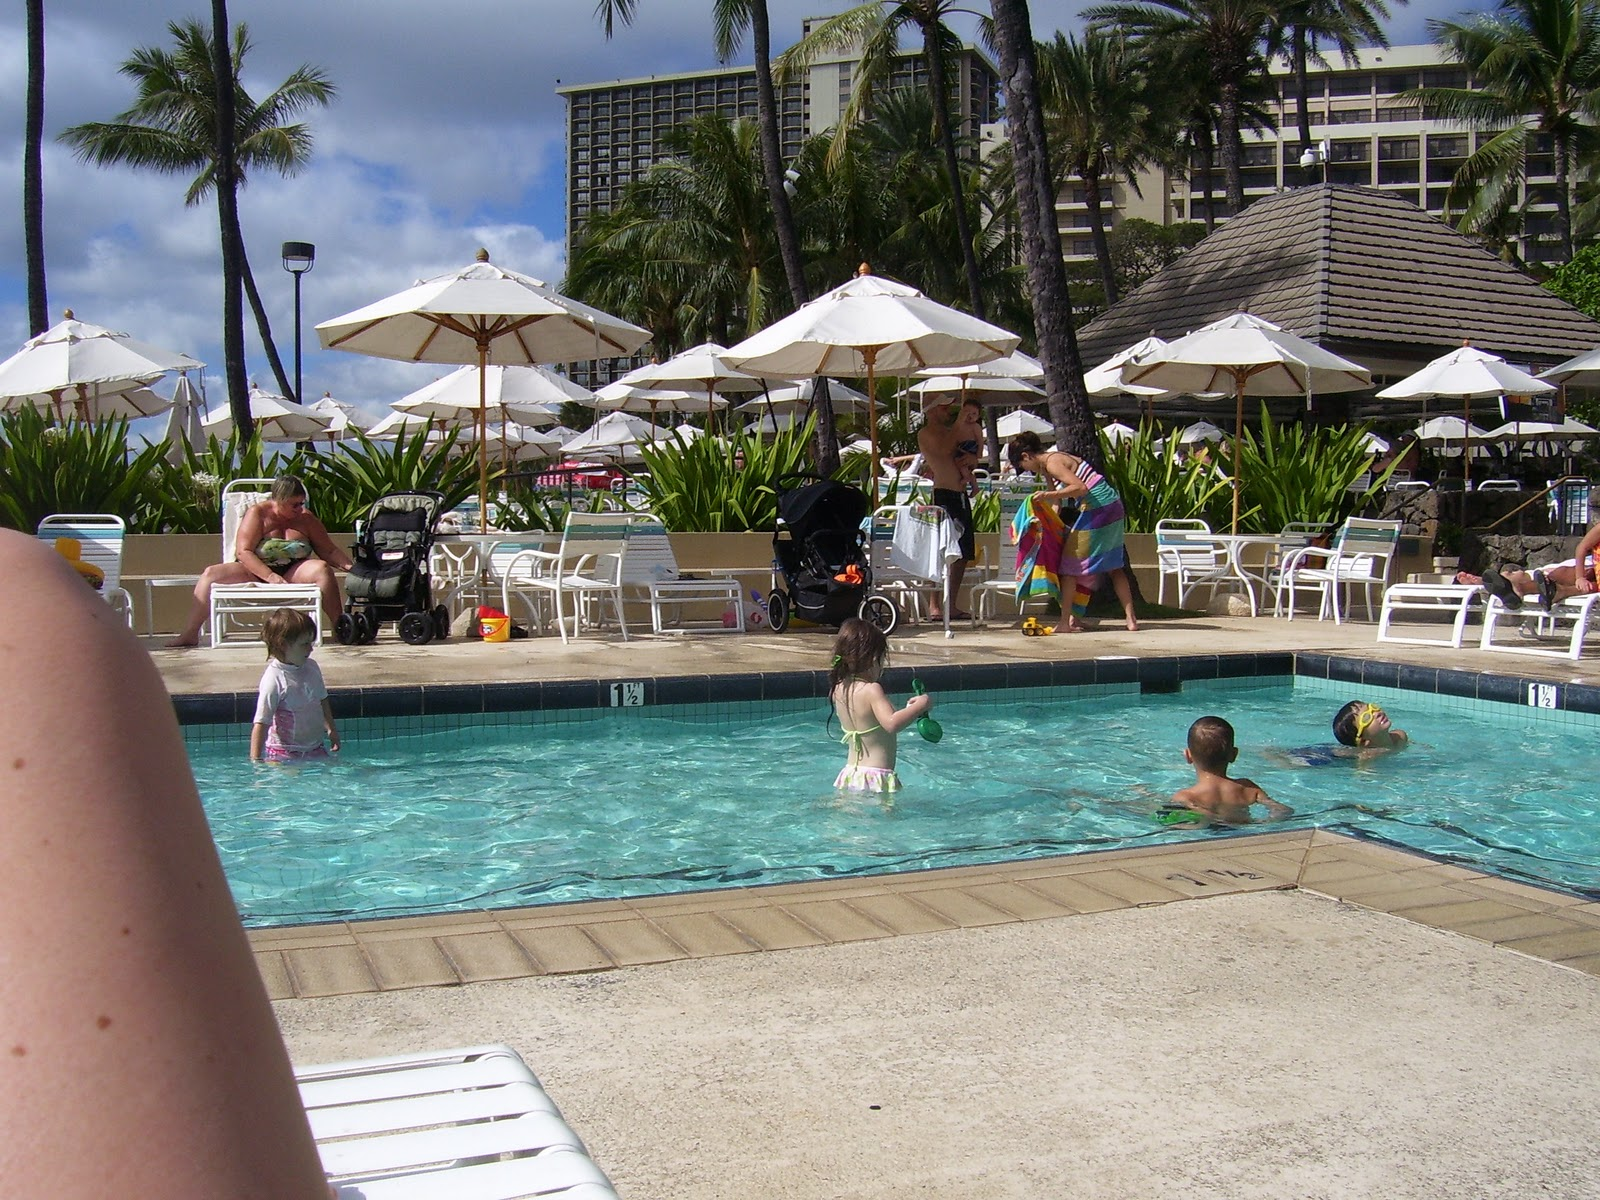 Hale Koa 5 Star Military Resort Waikiki Beach Oahu Hawaii